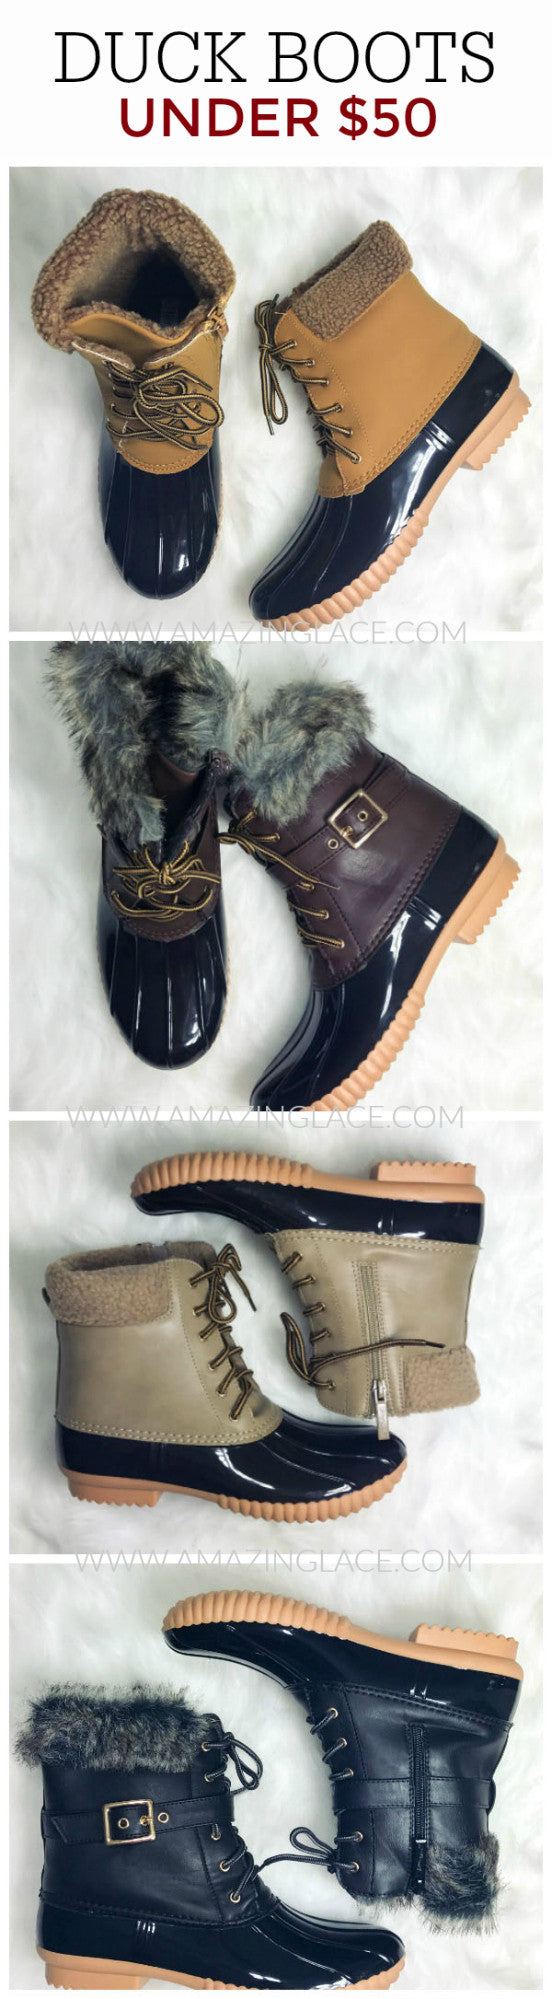 Weather Wonderland Duck Boots Are IN!!!